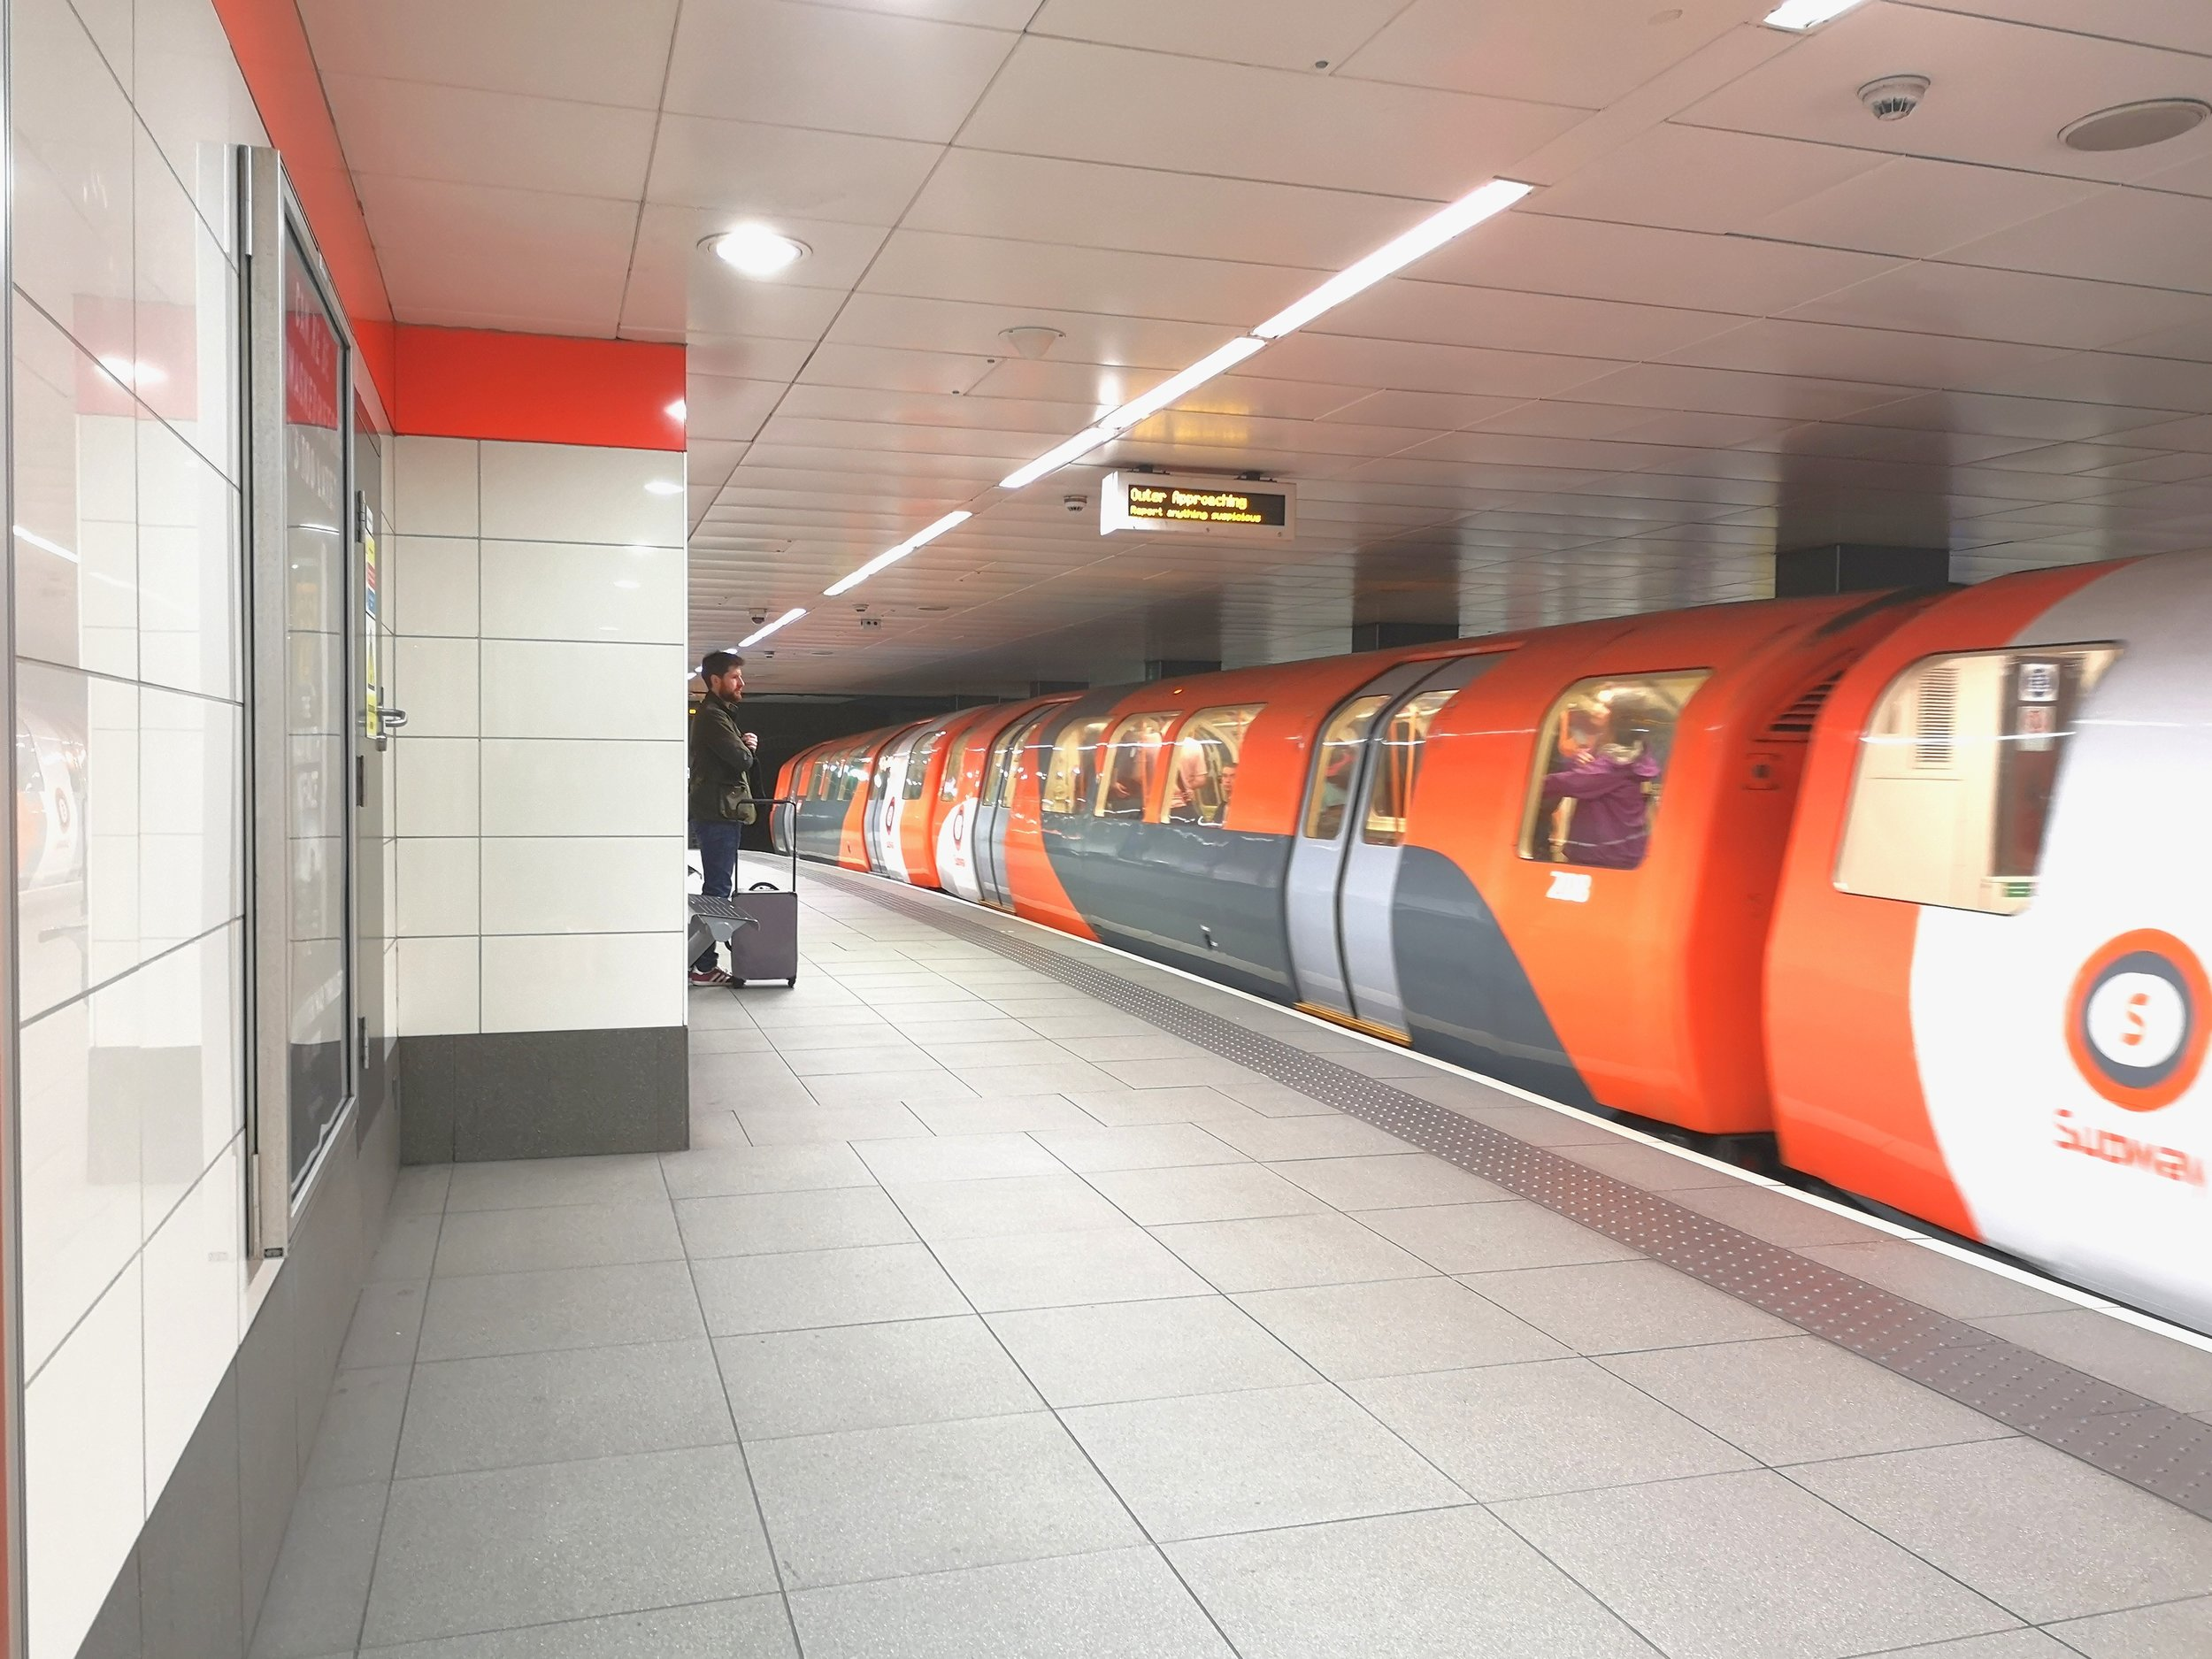 SVM have had a continued involvement with the Glasgow Subways to undertake electrical surveys and provide reports on the supply, distribution and cabling infrastructure.